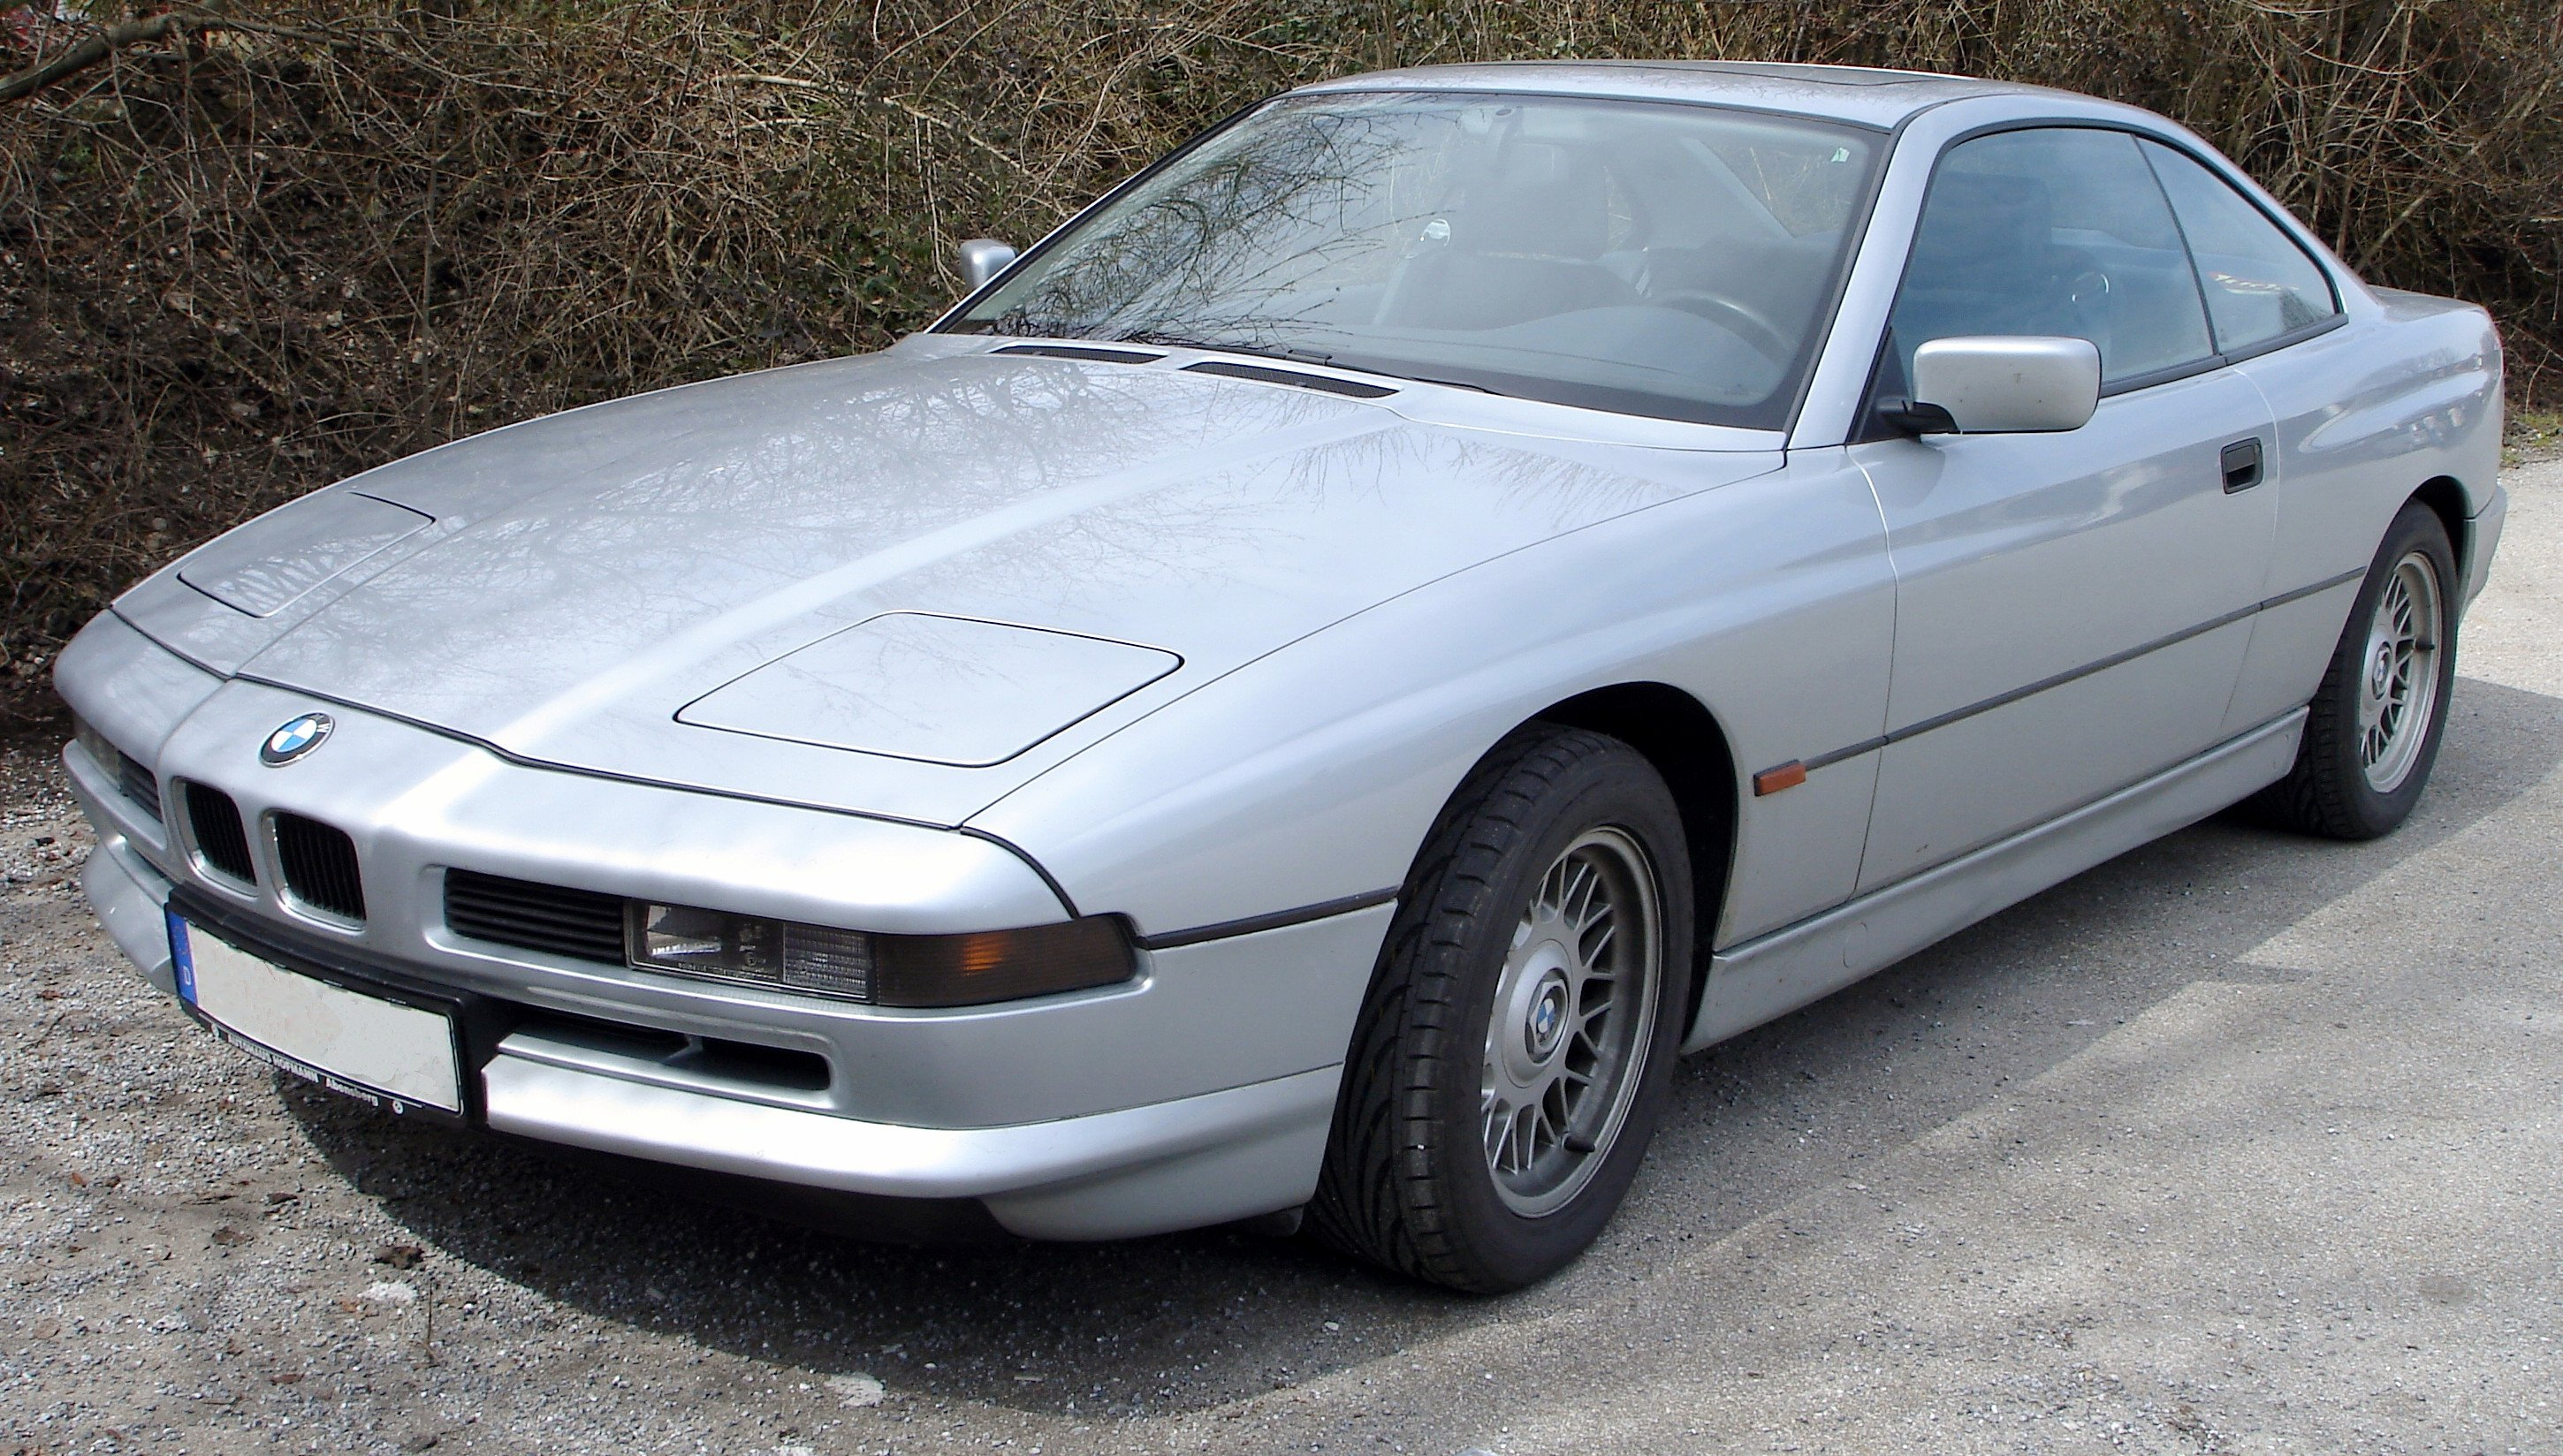 bmw 8er (e31) 1996 wallpaper #2